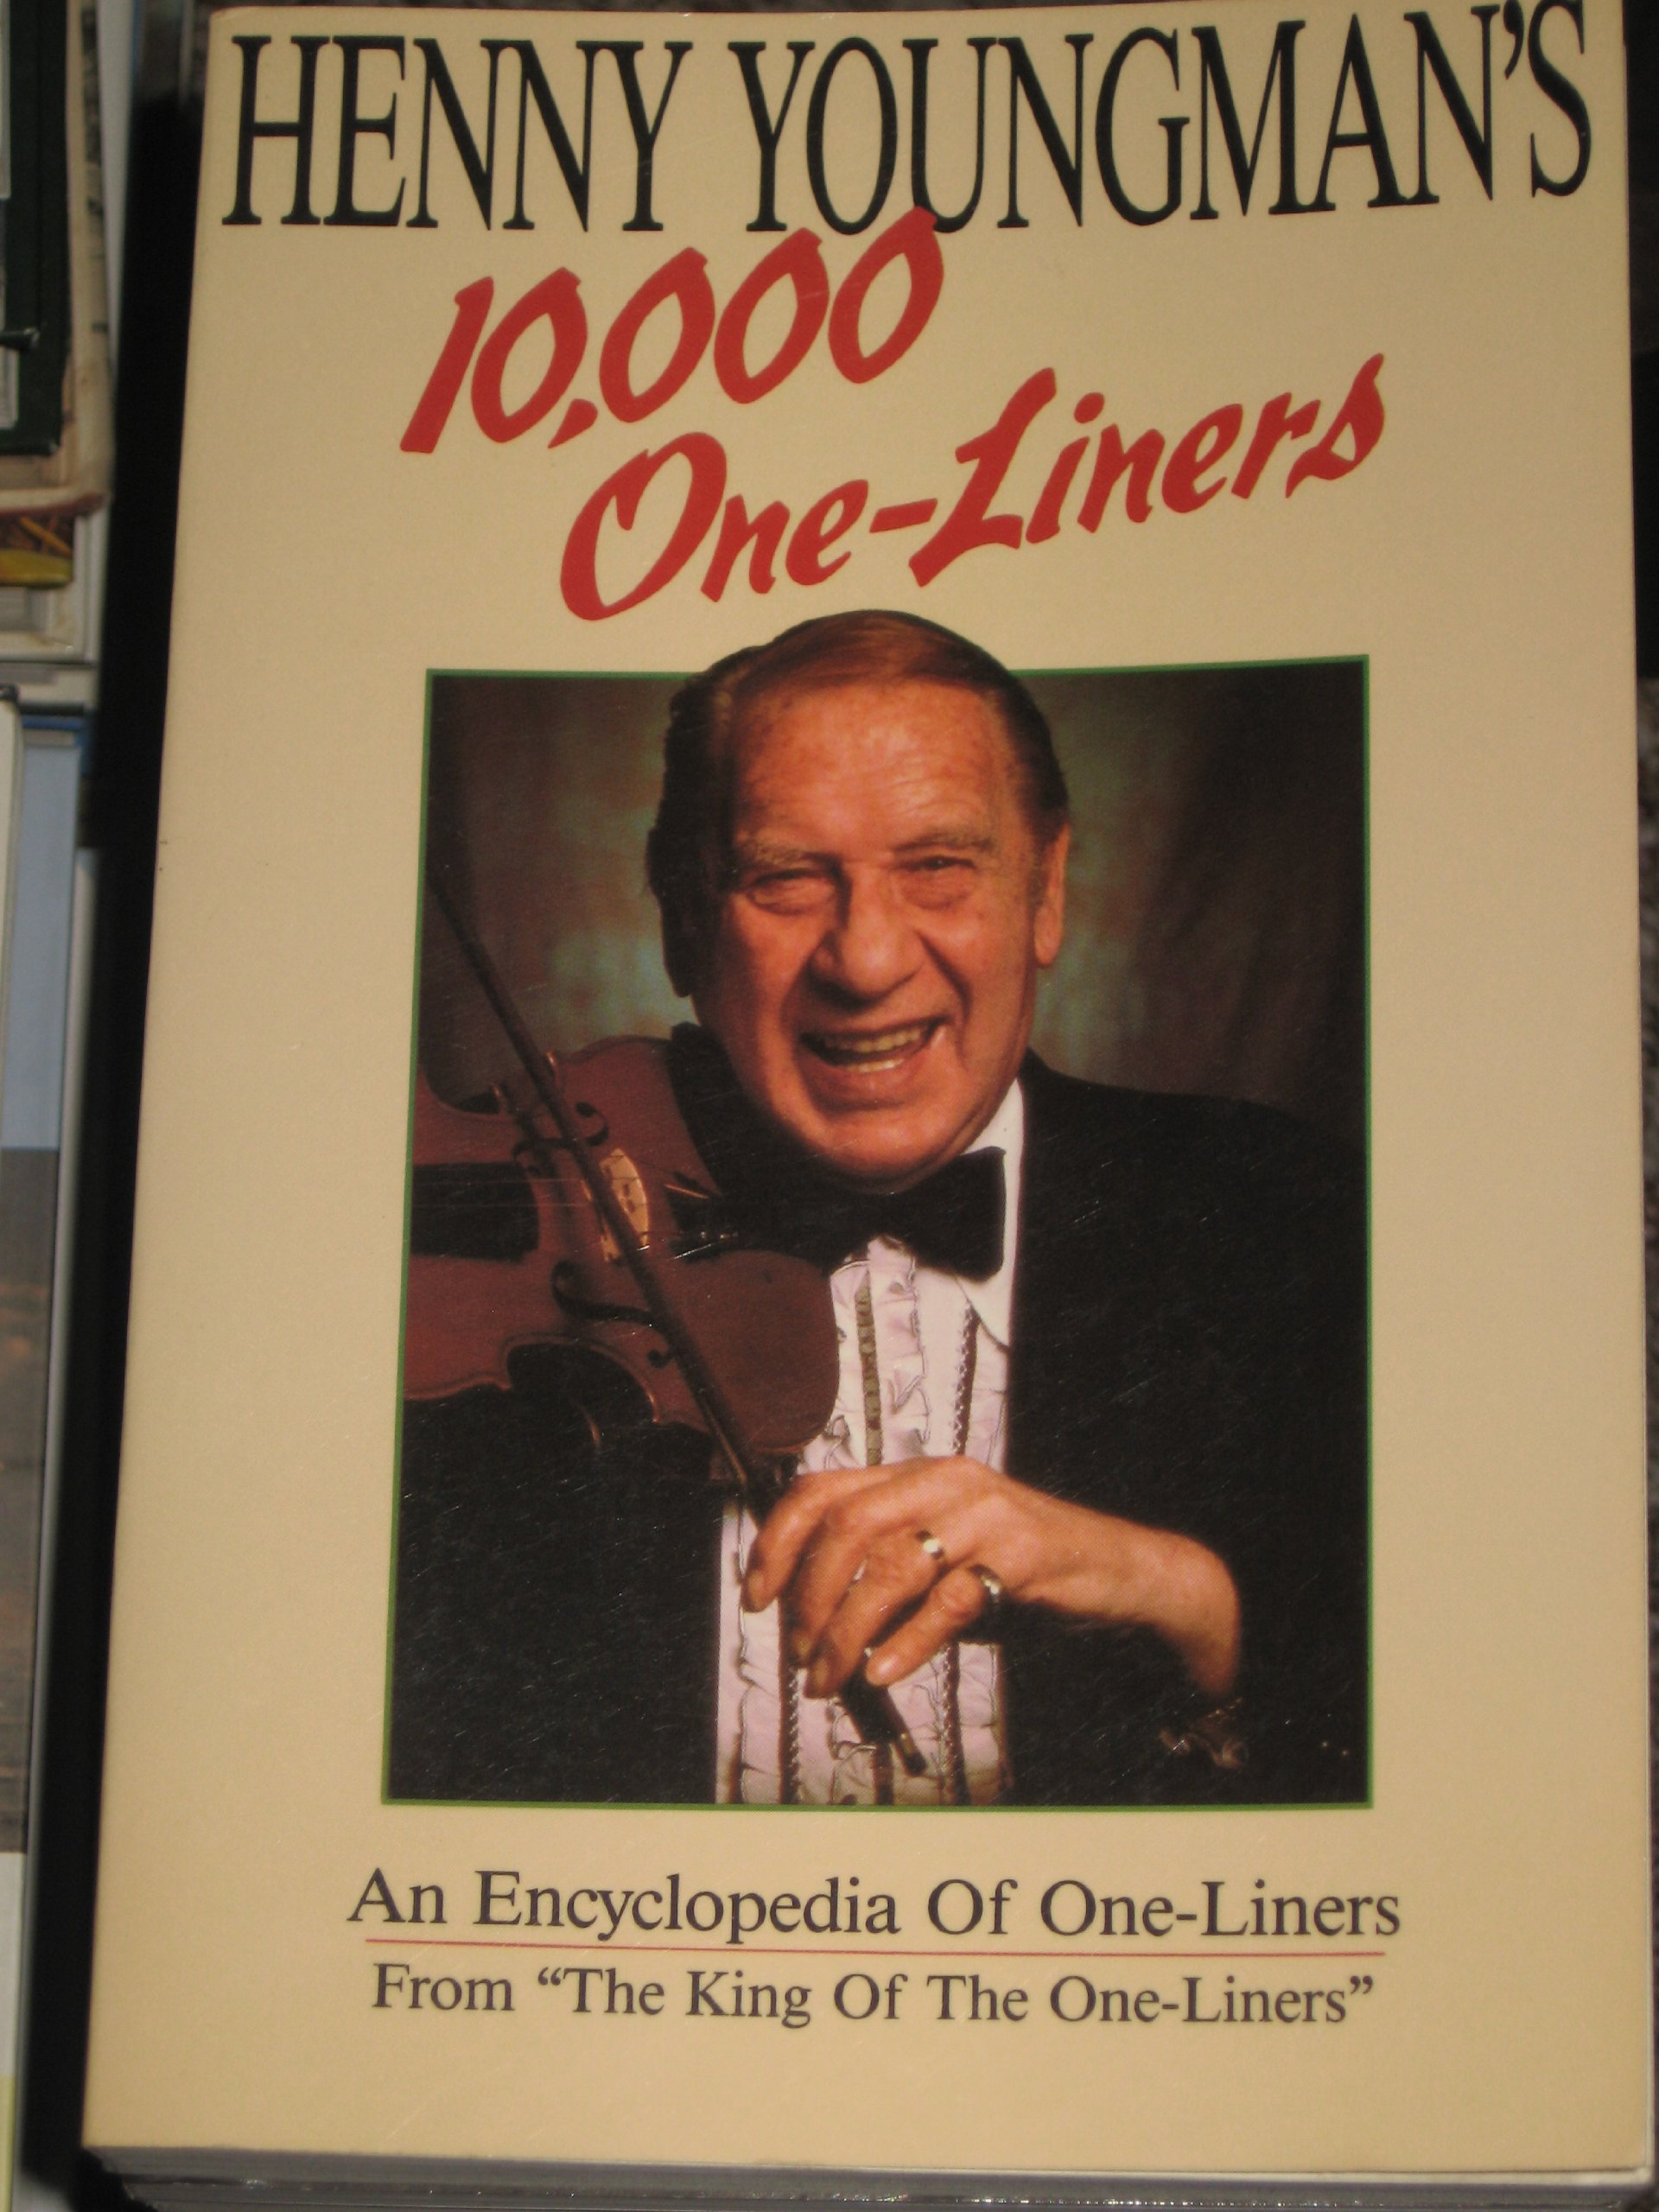 Henny Youngman's 10,000 One -Liners: An Encyclopedia of One-Liners Paperback – December 1, 1989 Ed Shanaphy Henny Youngman' s 10 Cpg Inc 0943748399